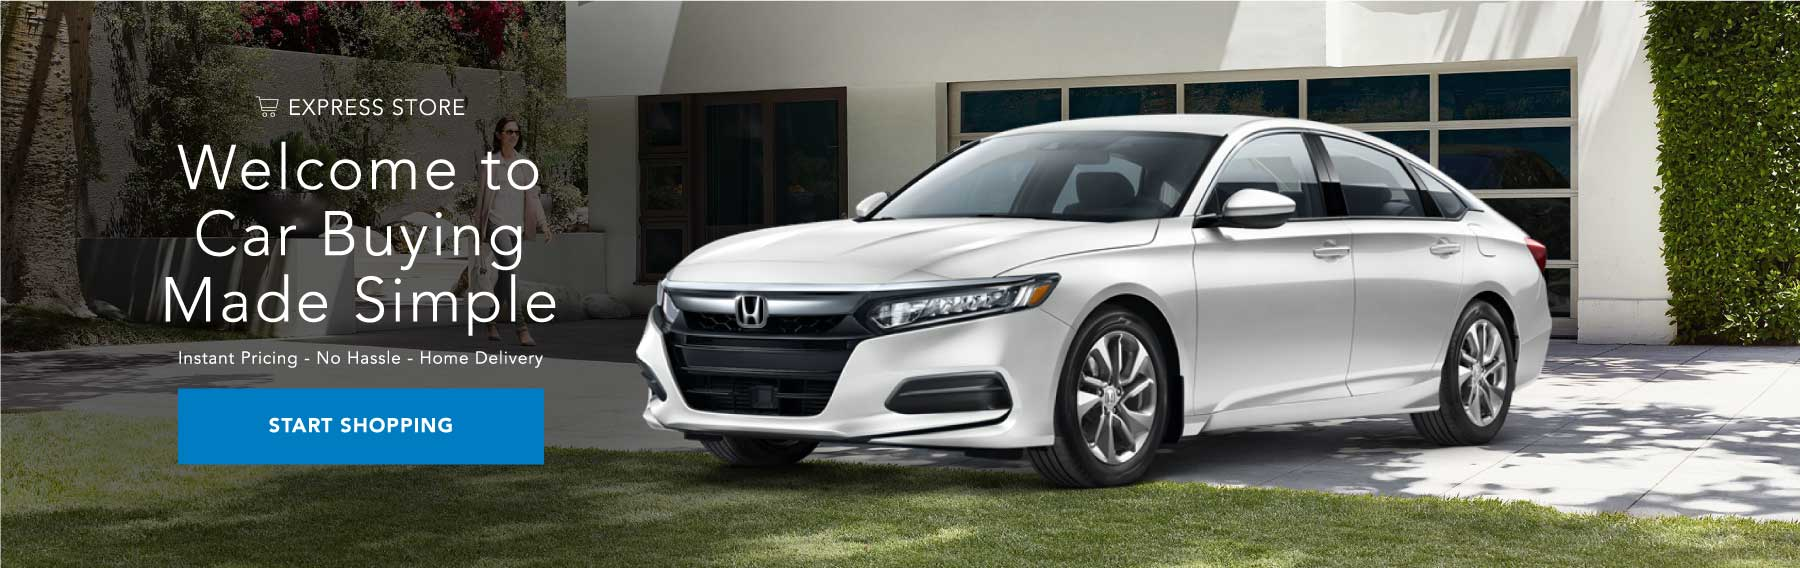 Good Express Buying With Honda Of Olathe